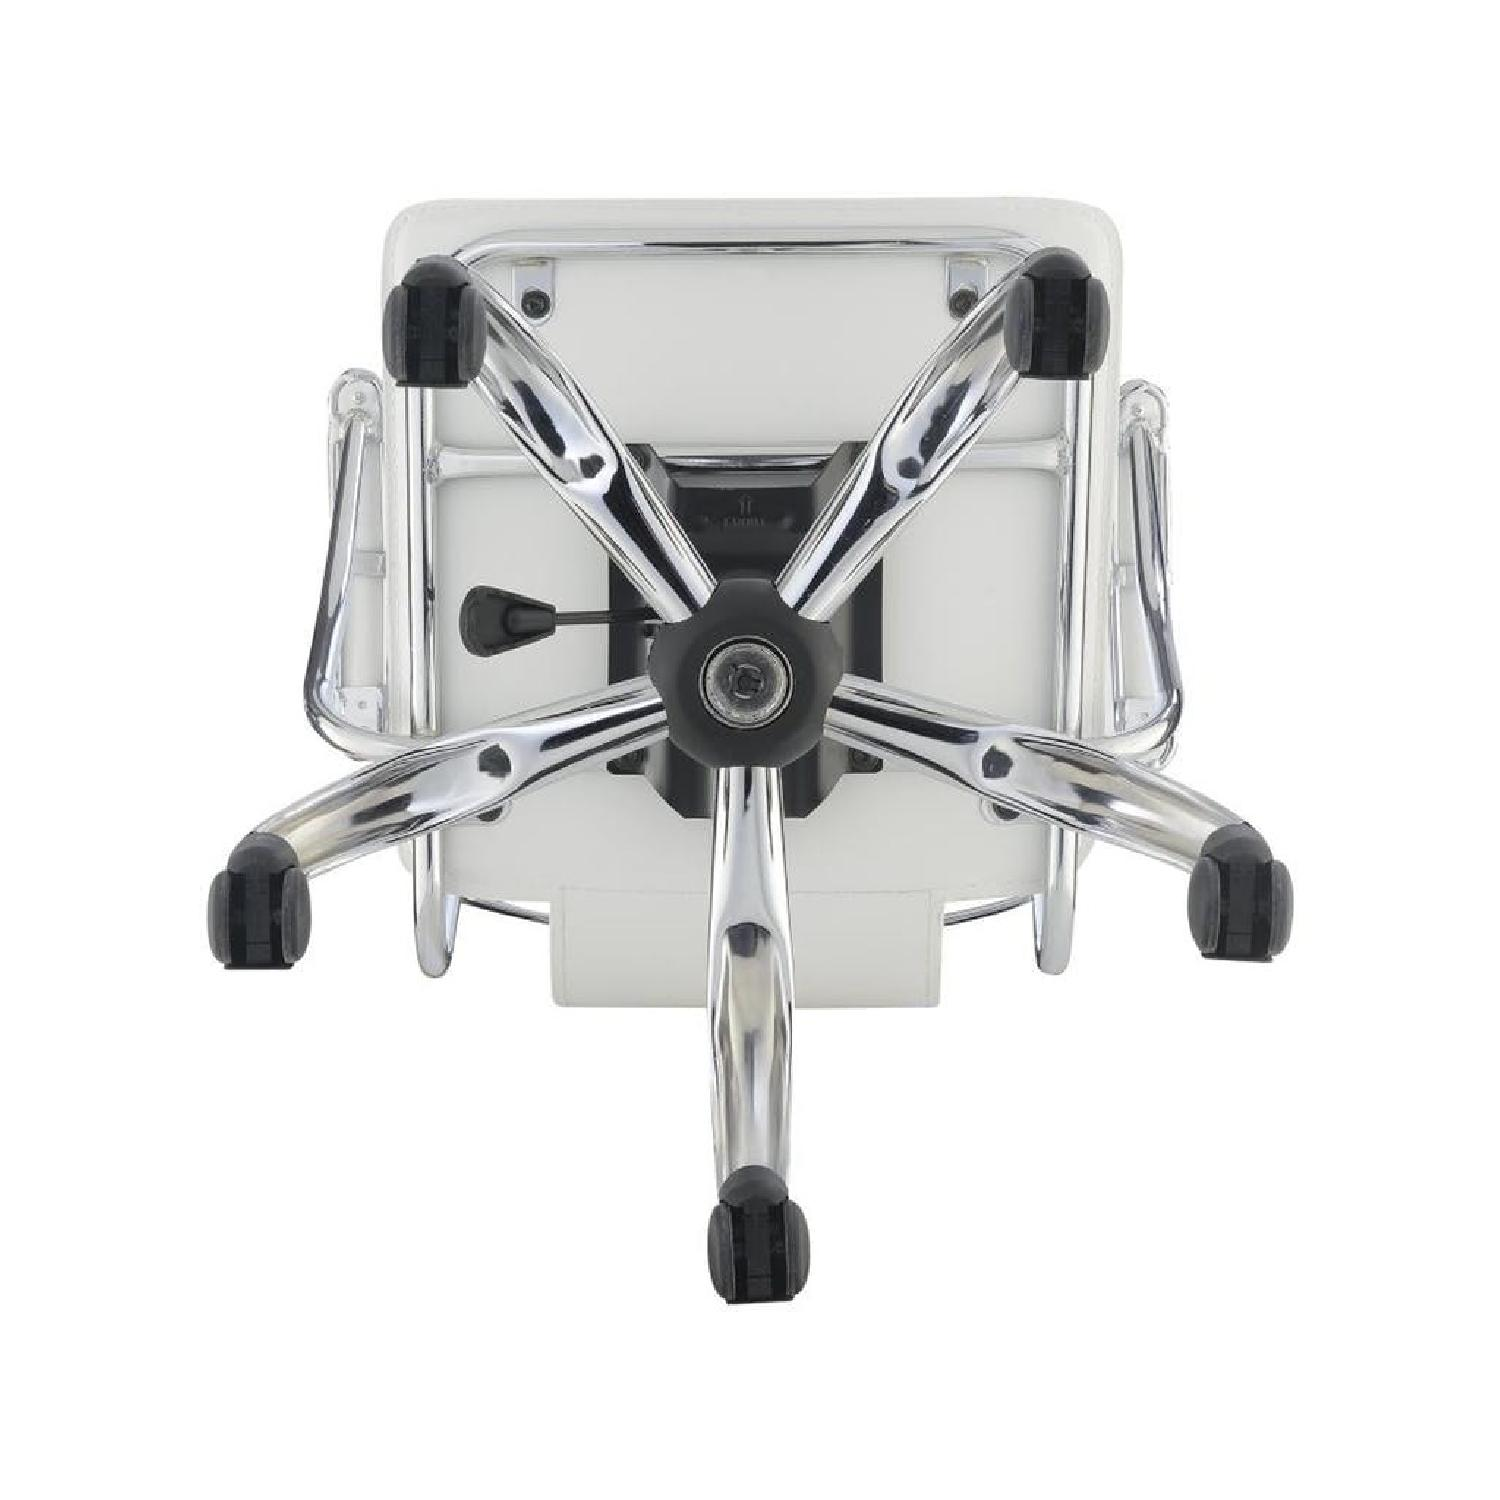 Modern Office Chair in White Leatherette w/ Chrome Legs - image-4